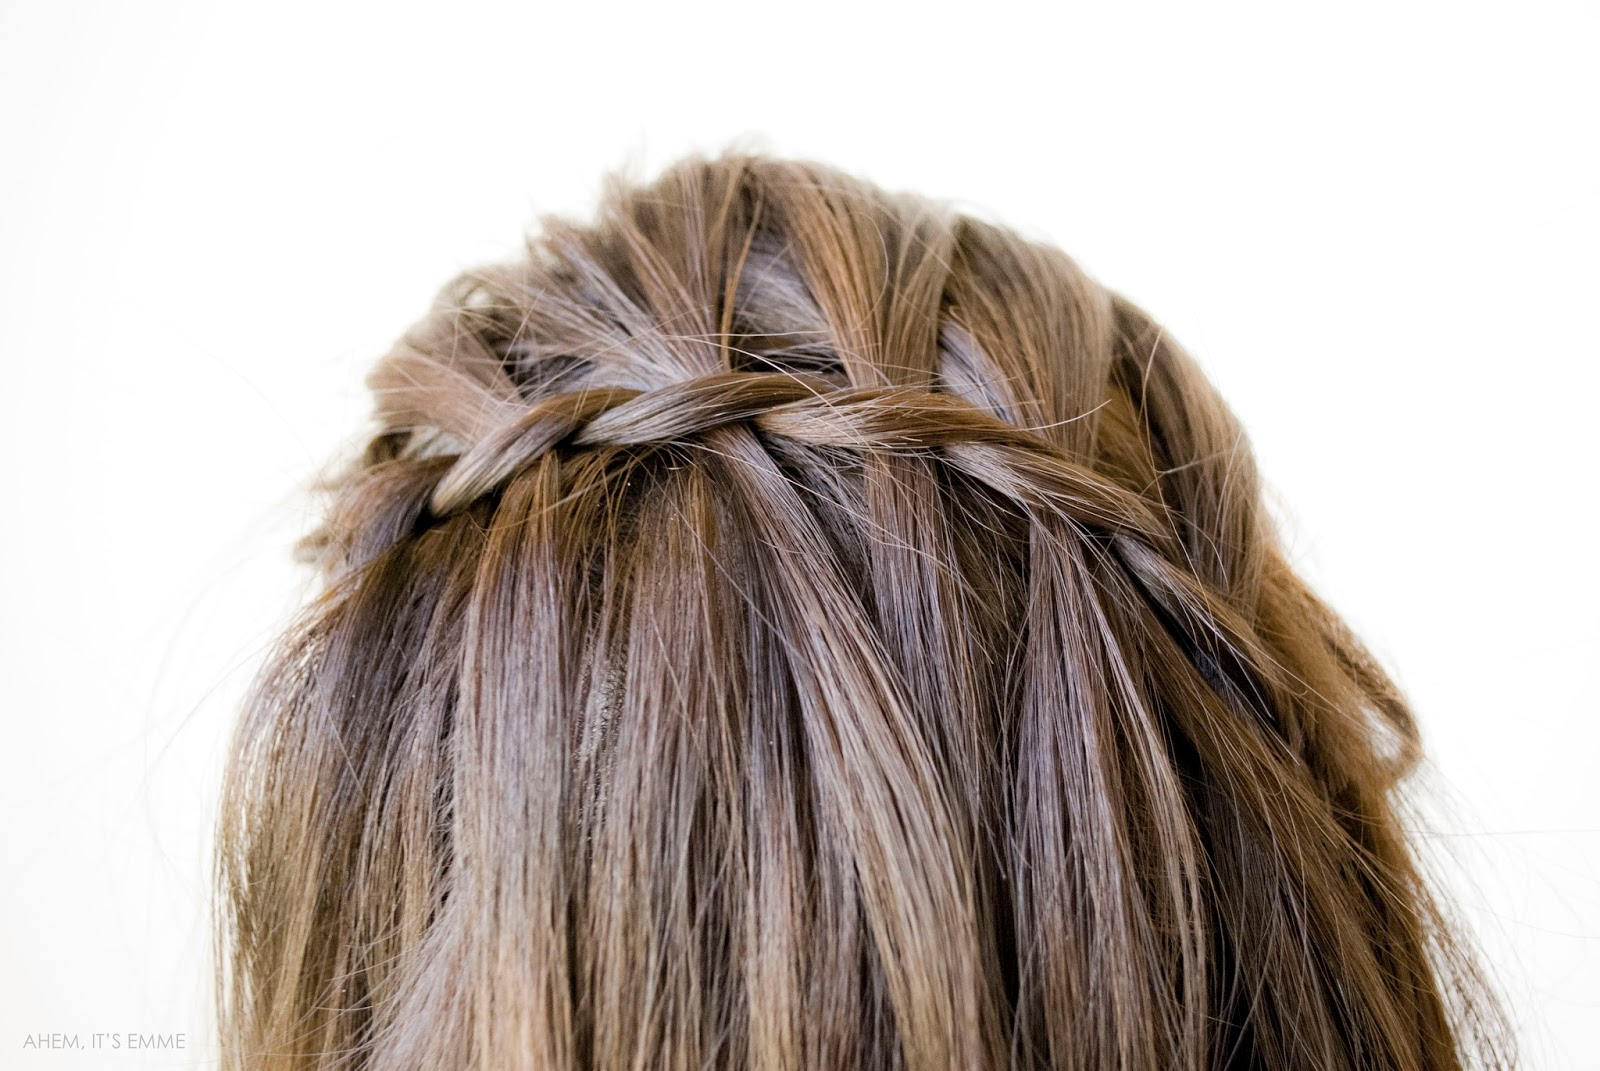 5 Minute Hairstyles For Girls Ahem Its Emme 5 Minute Spring Hairstyles Easy Faux Waterfall